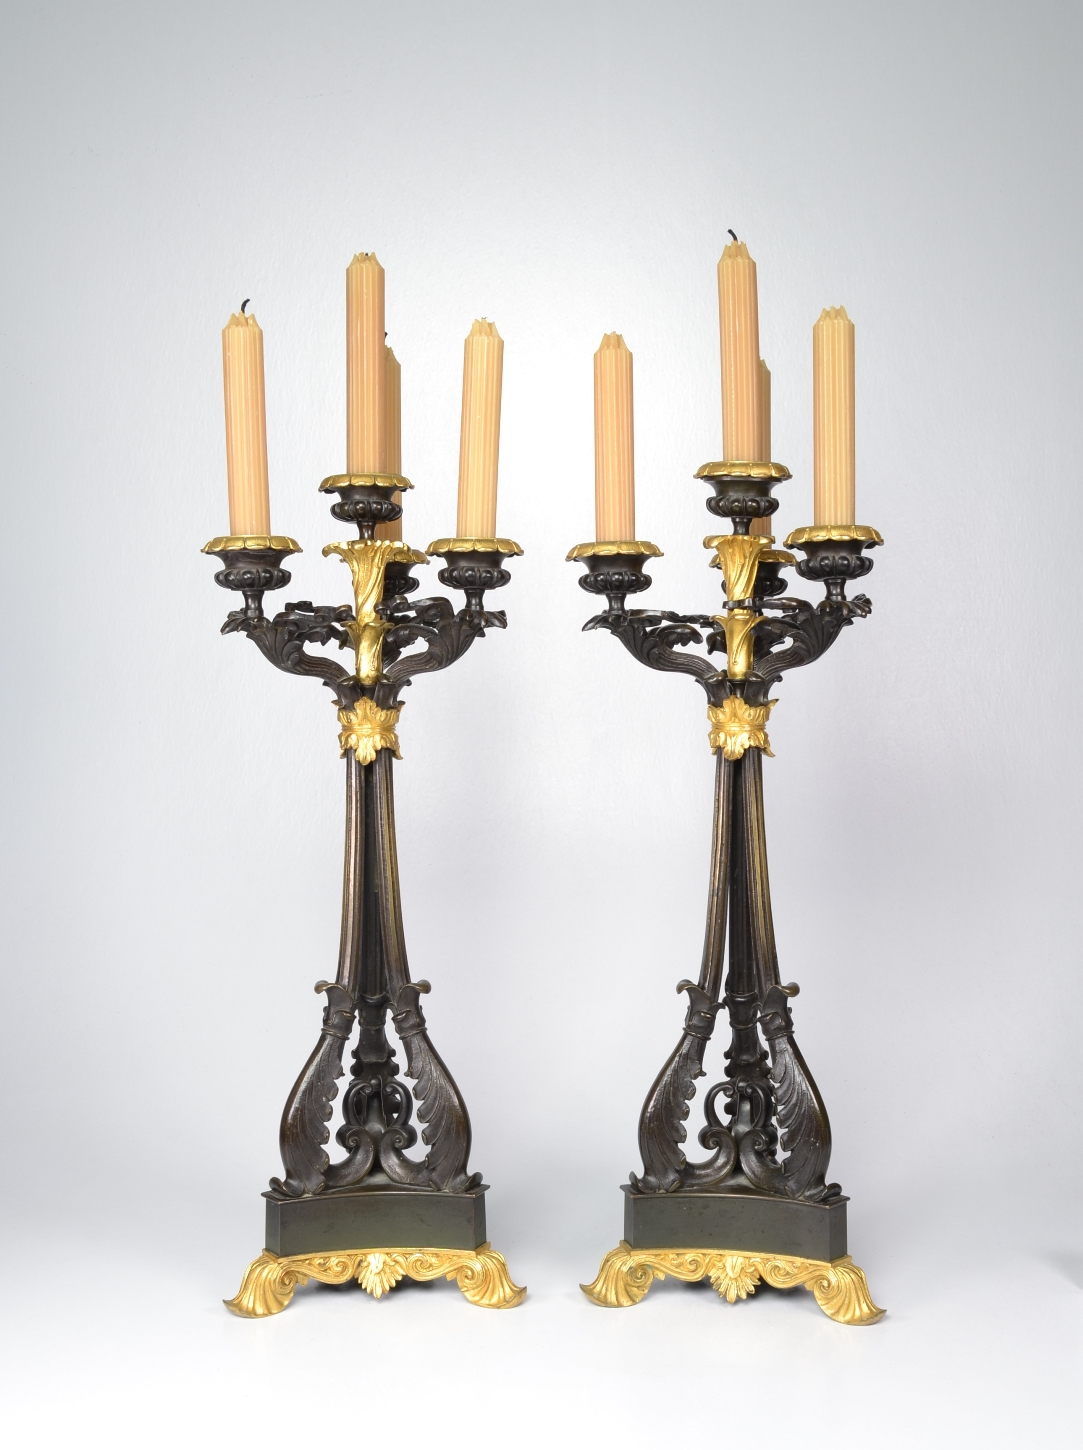 View 3: Pair of Louis-Philippe Bronze and Ormolu Candelabra, c. 1840